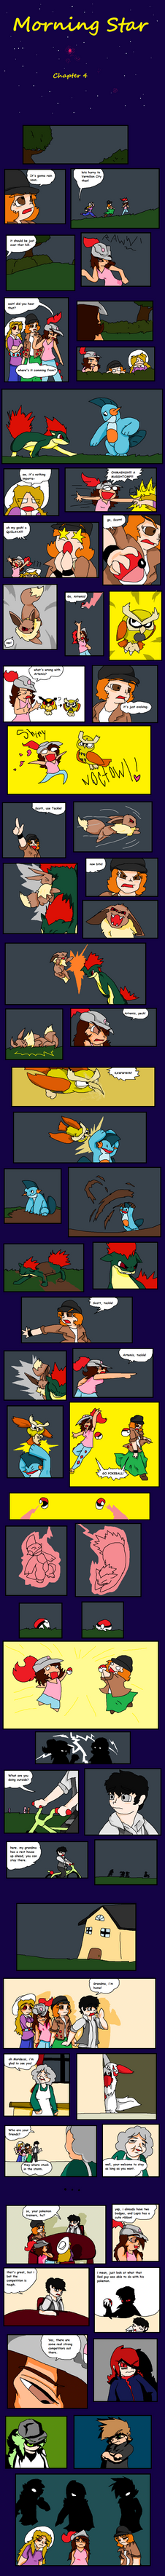 pokemon: Morning Star chp:4 pg 1 by SaintsSister47